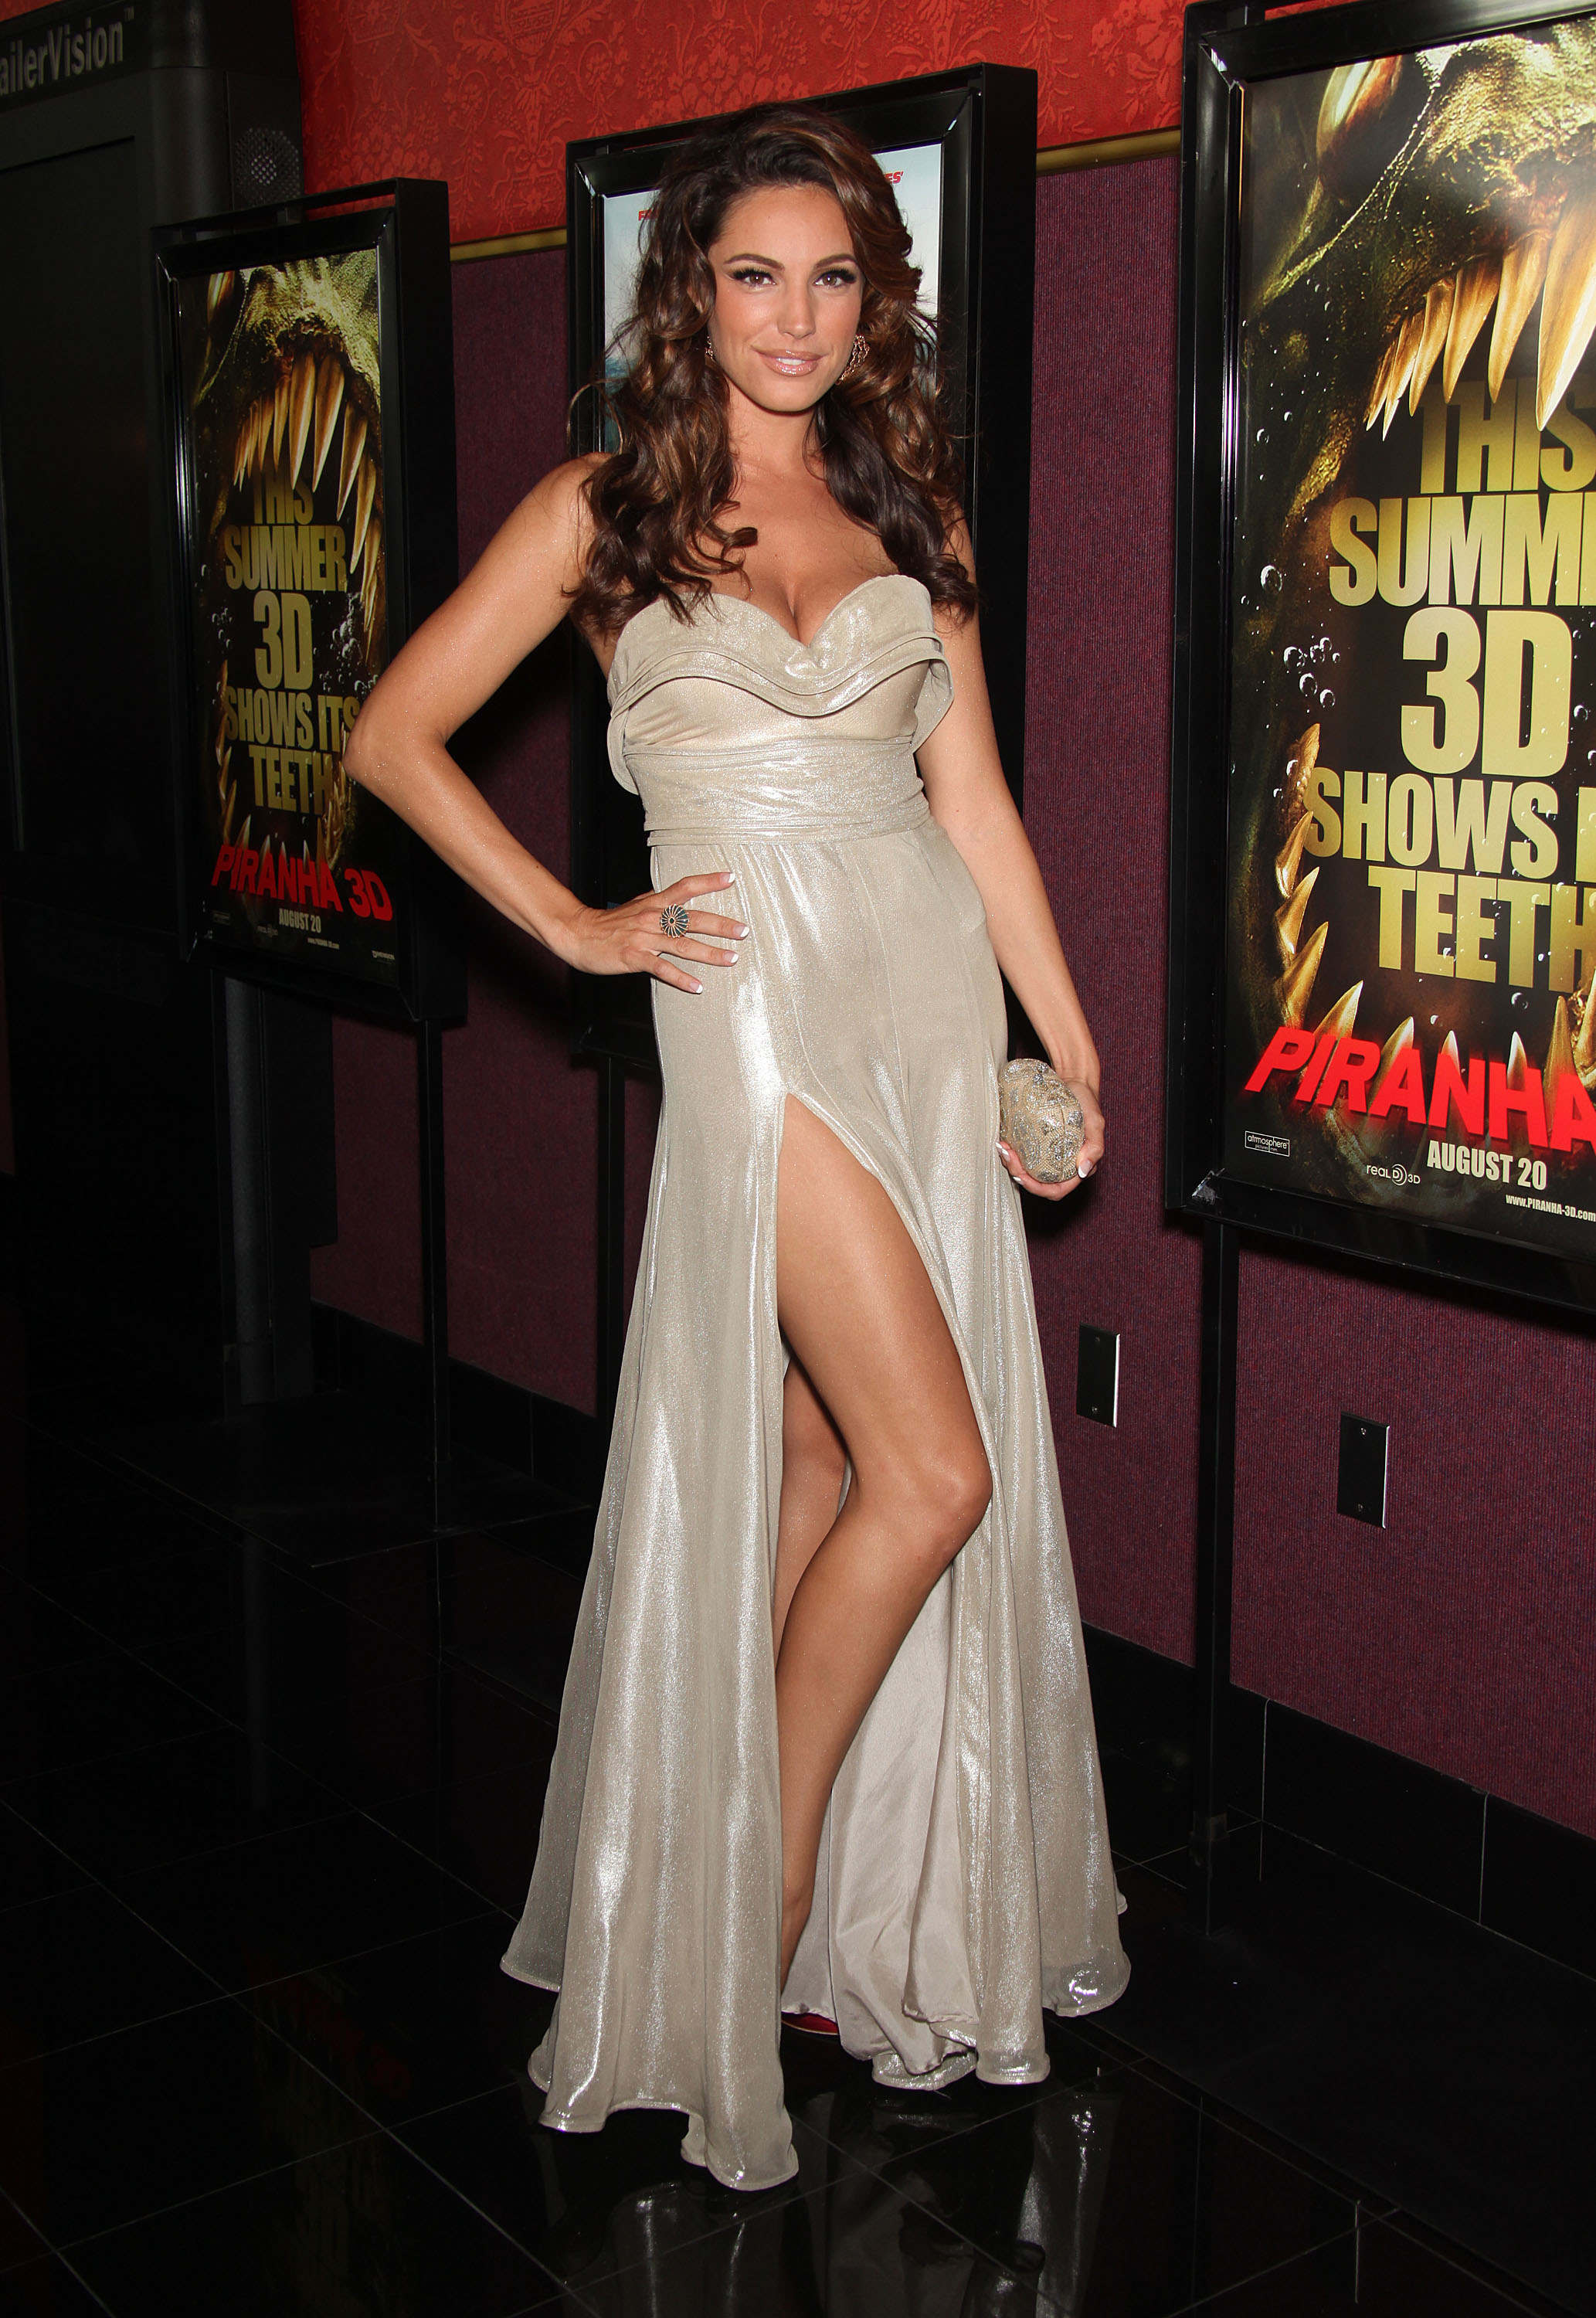 kelly-brook-pics-from-piranha-3d-premiere-in-hollywood-27 - GotCeleb